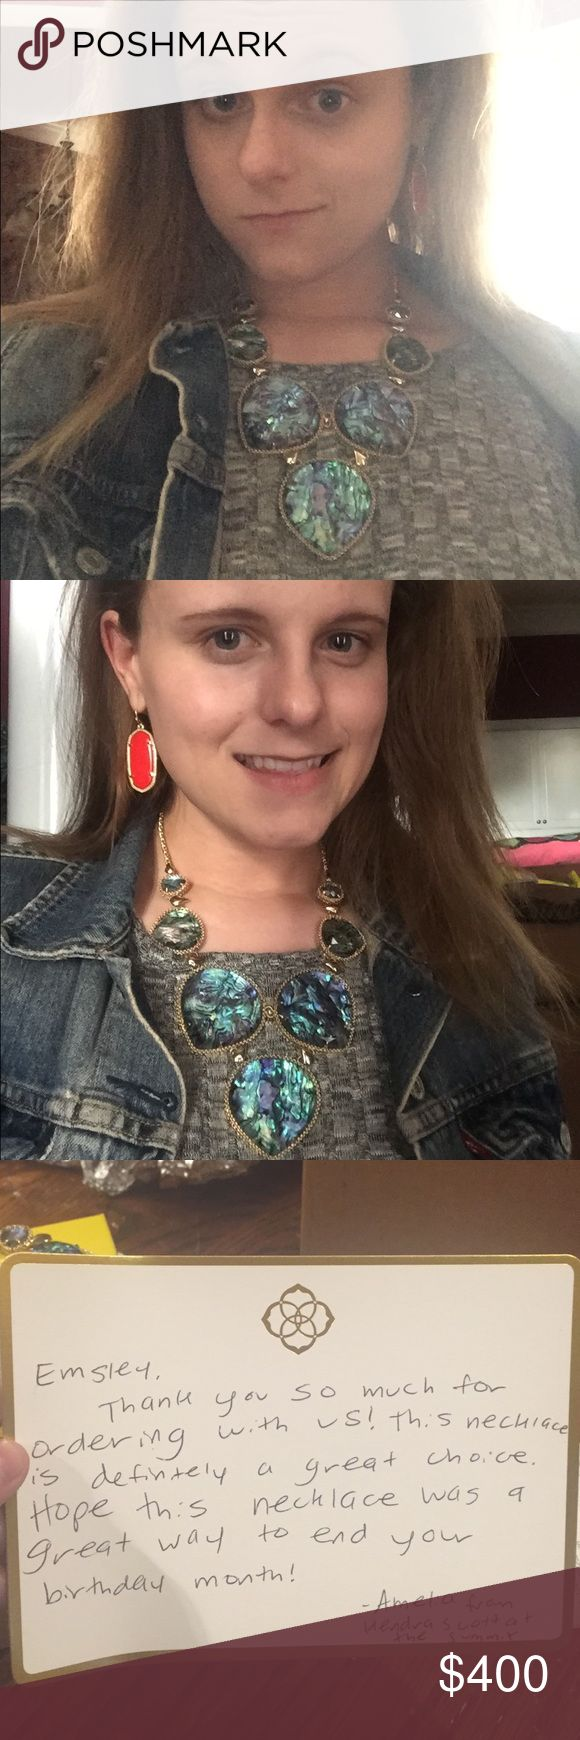 BIRTHDAY 1/2 off :-) I am so thankful for the sweet people at the Kendra Scott summit location in Alabama :-) I LOVE my necklace This is my FIRST statement necklace and I have two Harlows on the way now, Rose quarts and a variegated teal one :) Kendra Scott Jewelry Necklaces